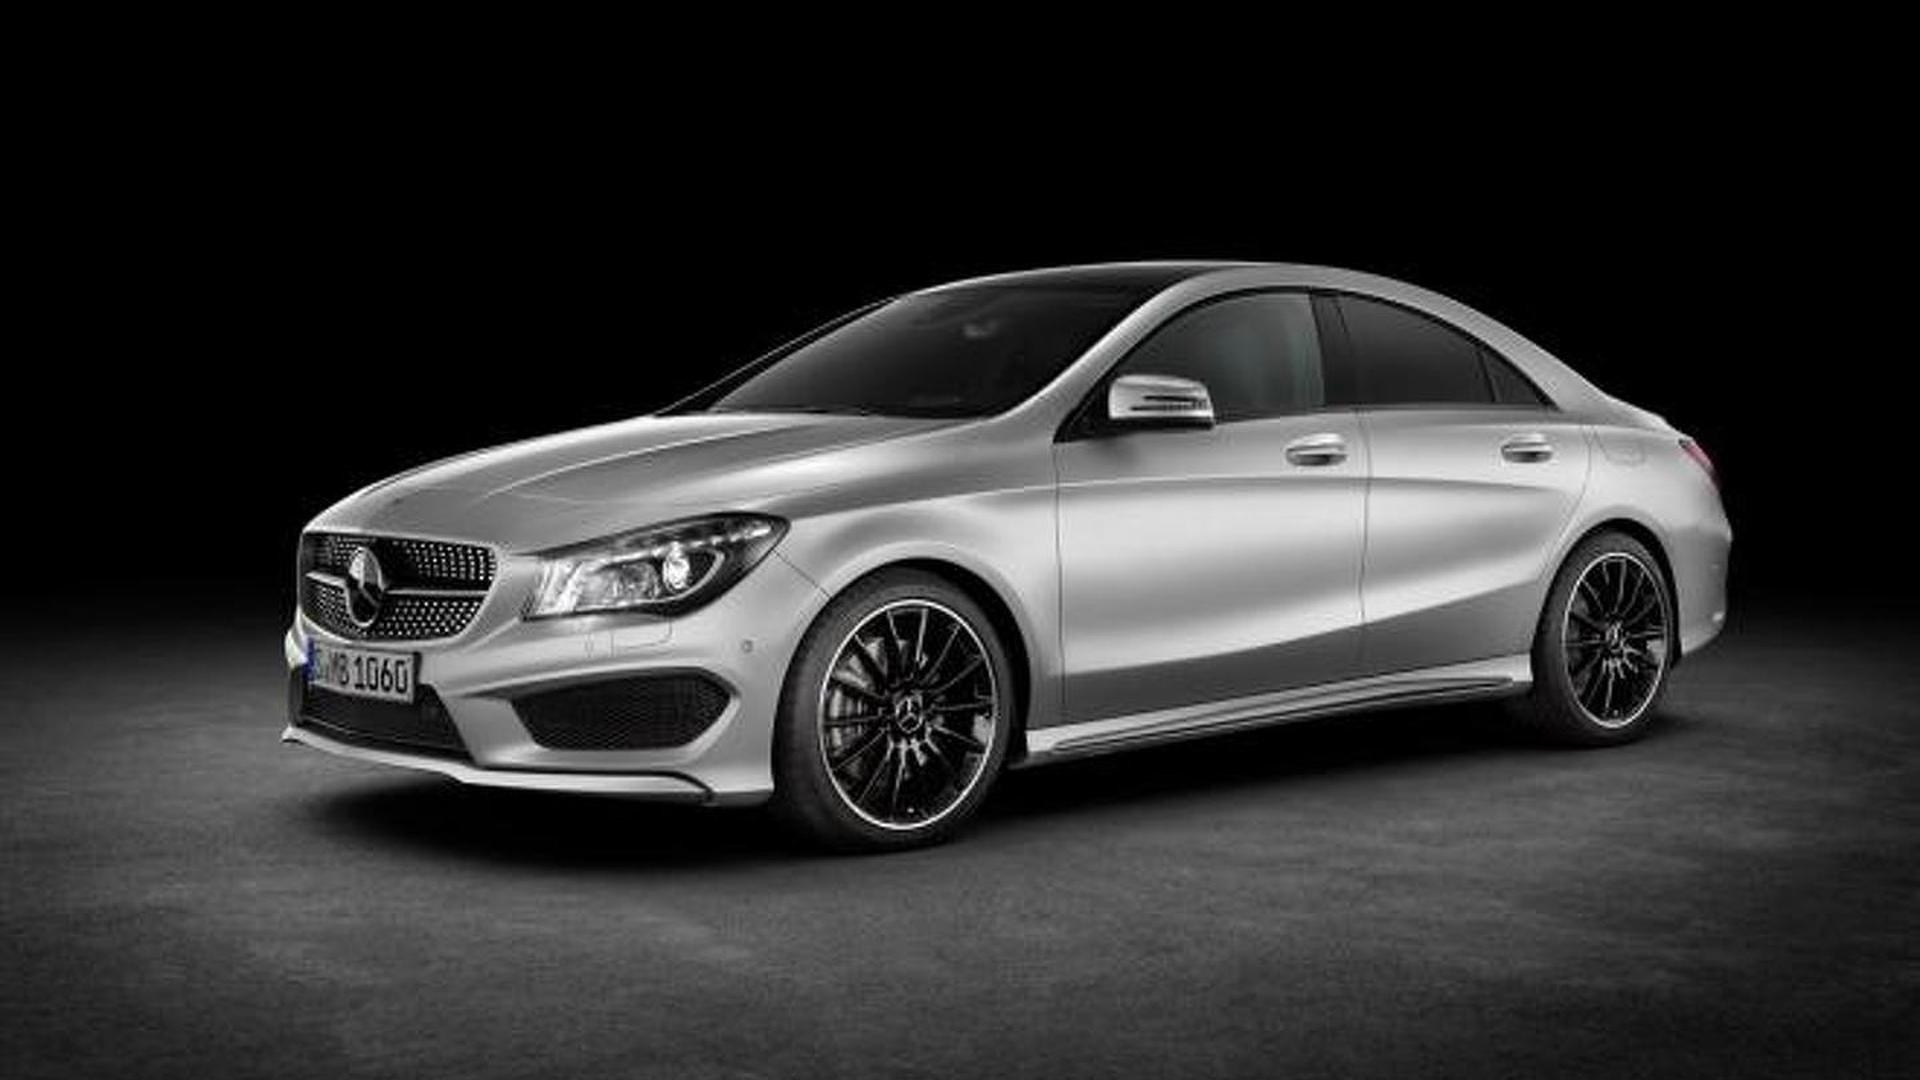 Mercedes to build next CLA & A-Class sedan variant in Mexico - report